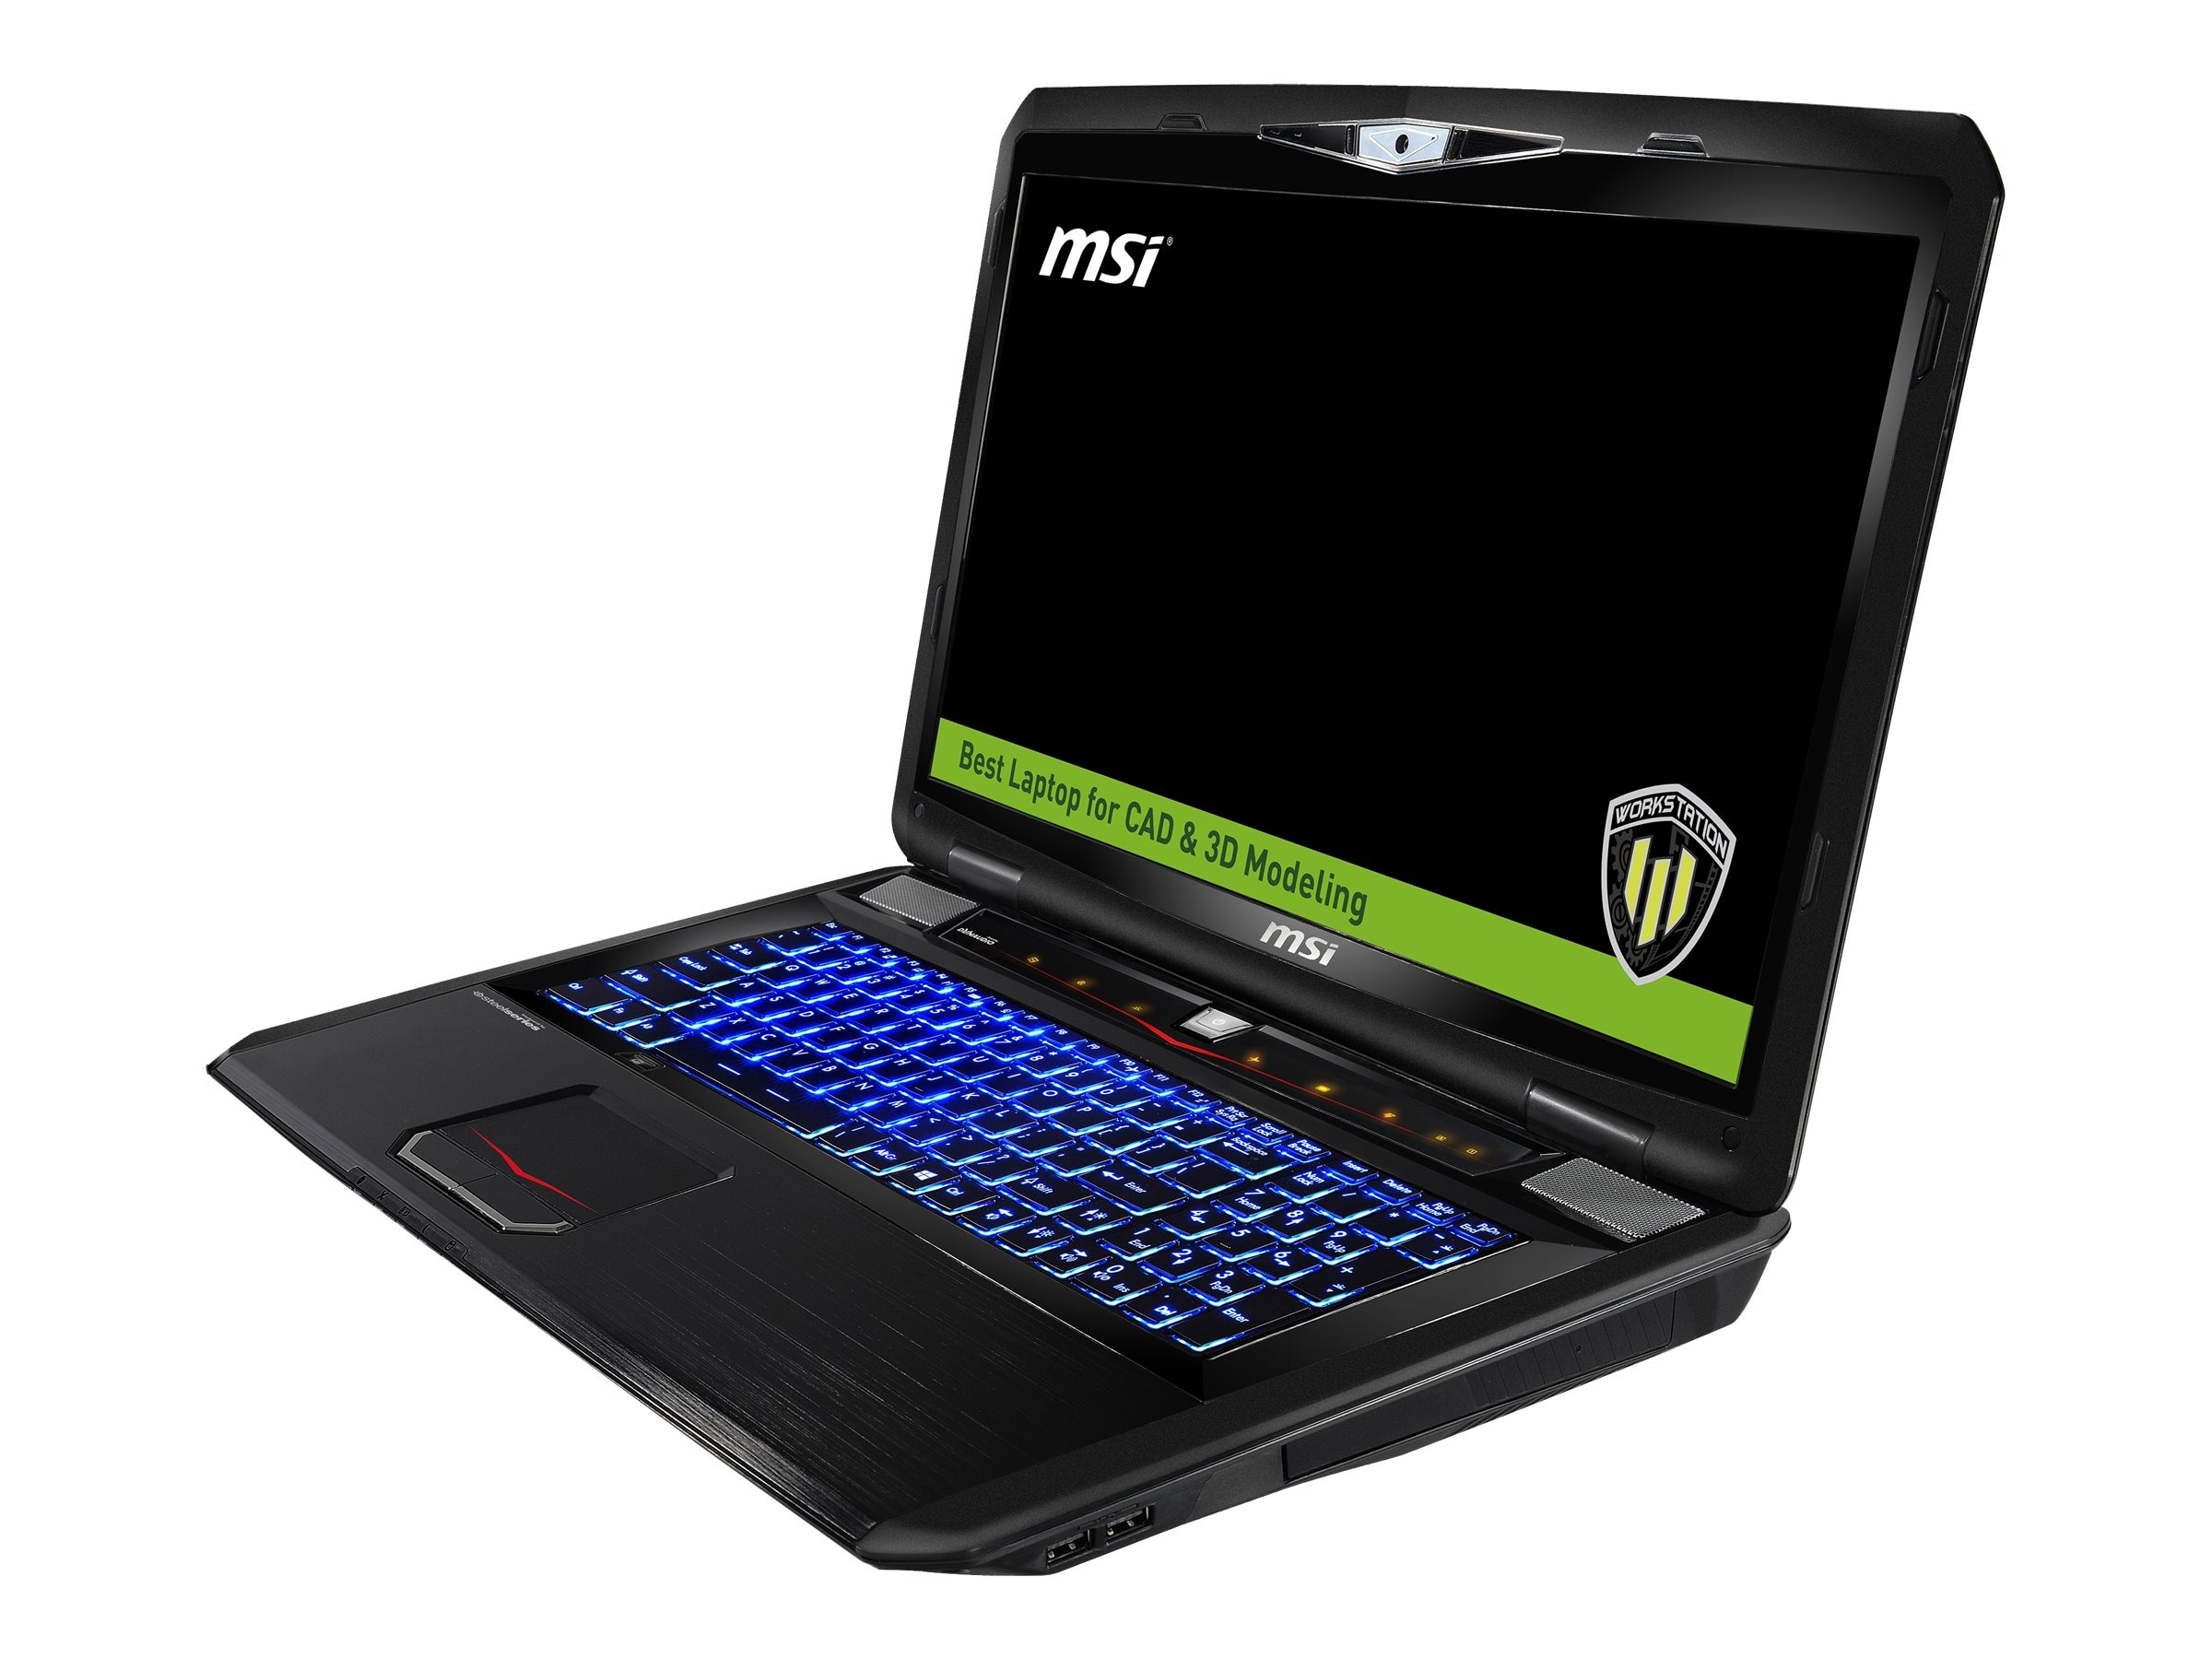 MSI WT70 2OL-1614US Notebook PC